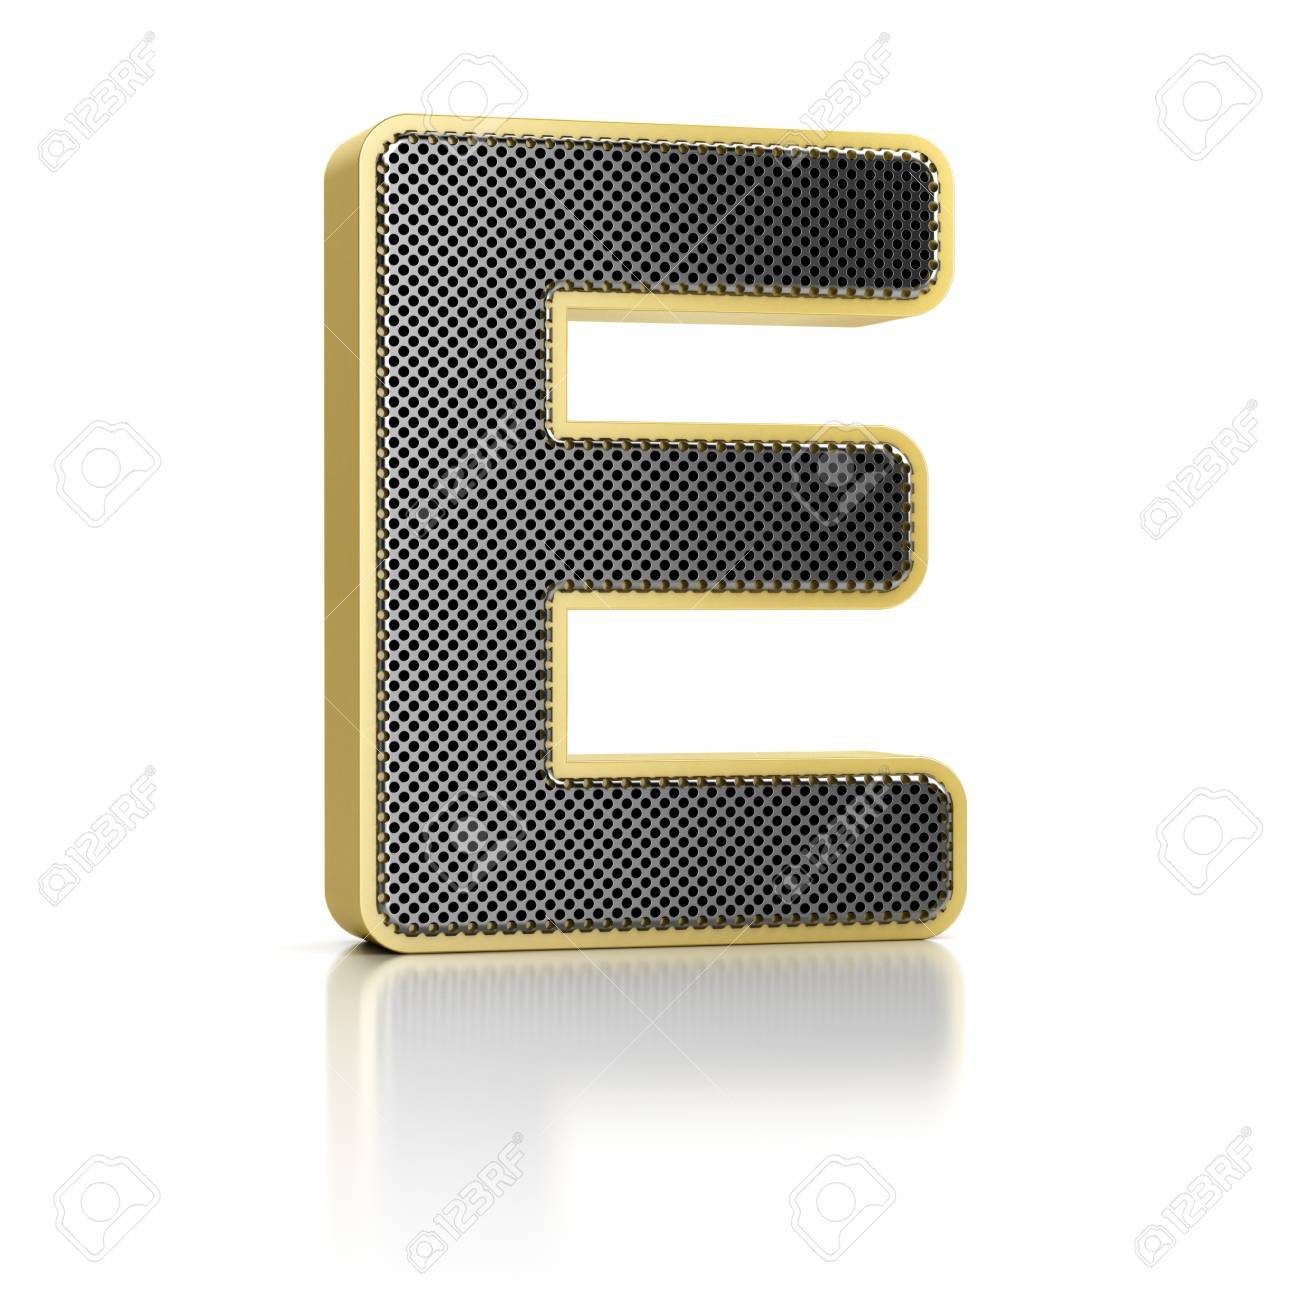 The letter E as a perforated metal object over white Stock Photo - 15750039